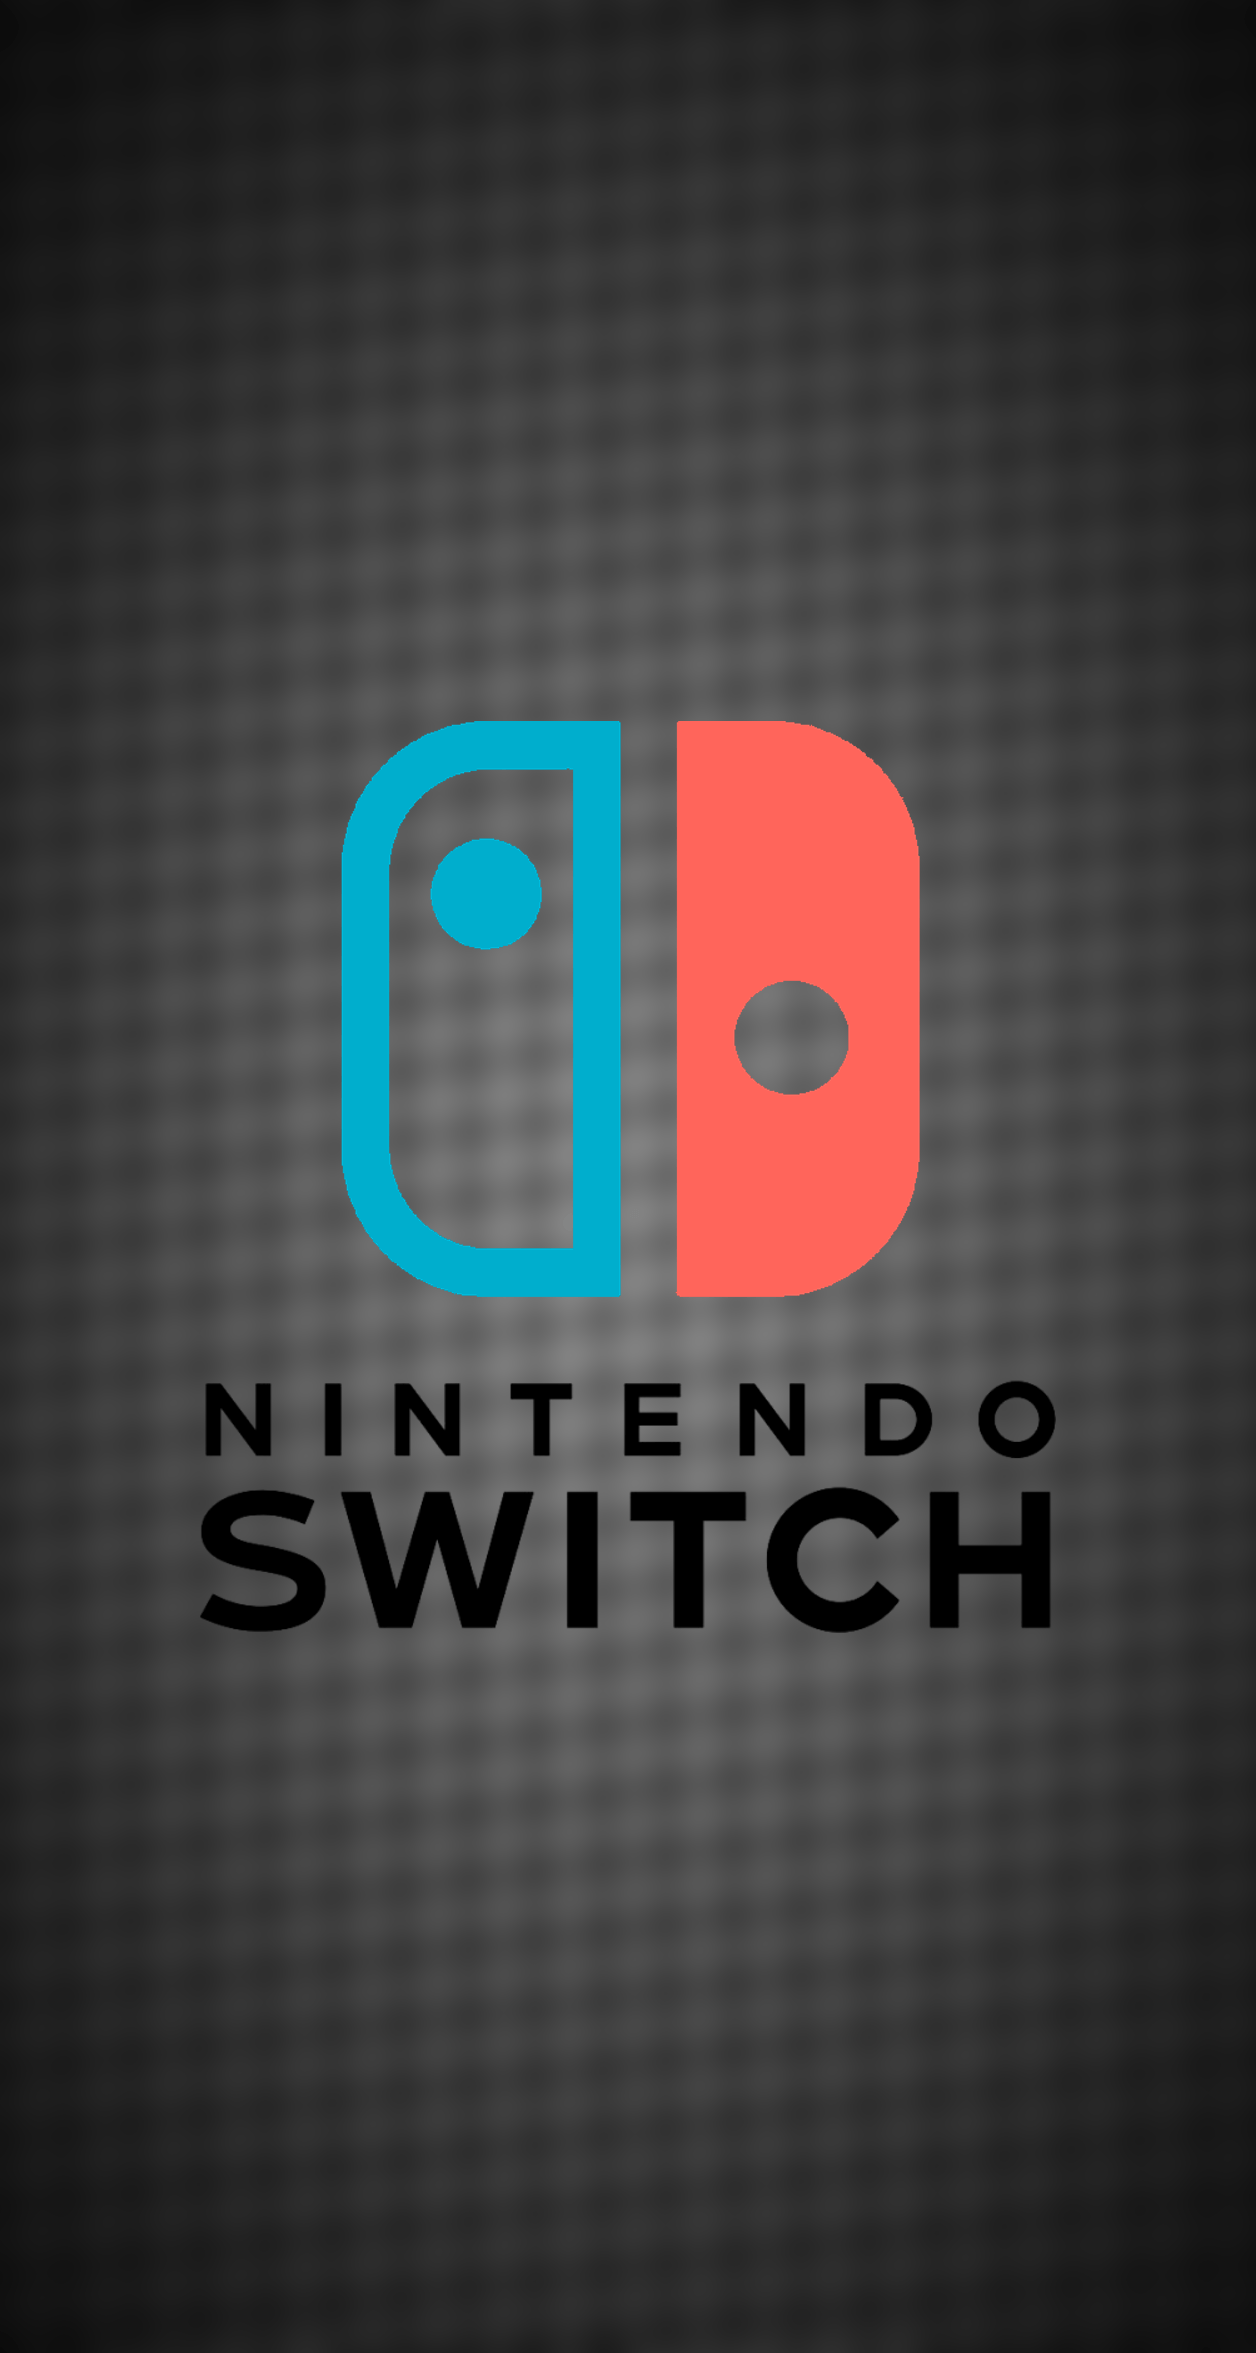 Nintendo Switch Wallpapers Top Free Nintendo Switch Backgrounds Wallpaperaccess